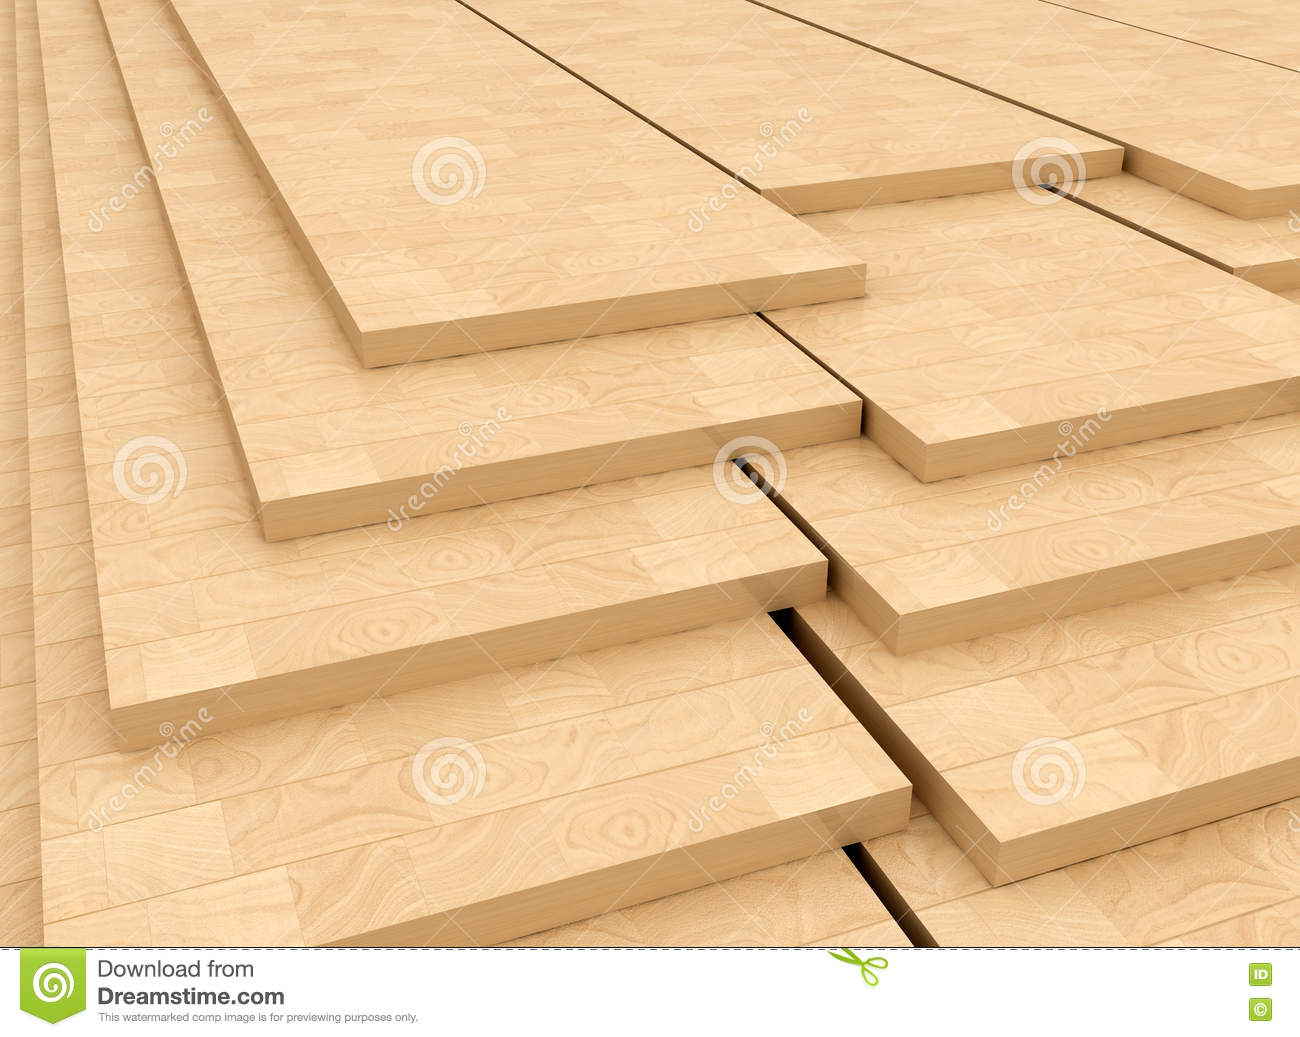 Construction Wood Panels ~ Wood panels stock illustration of material